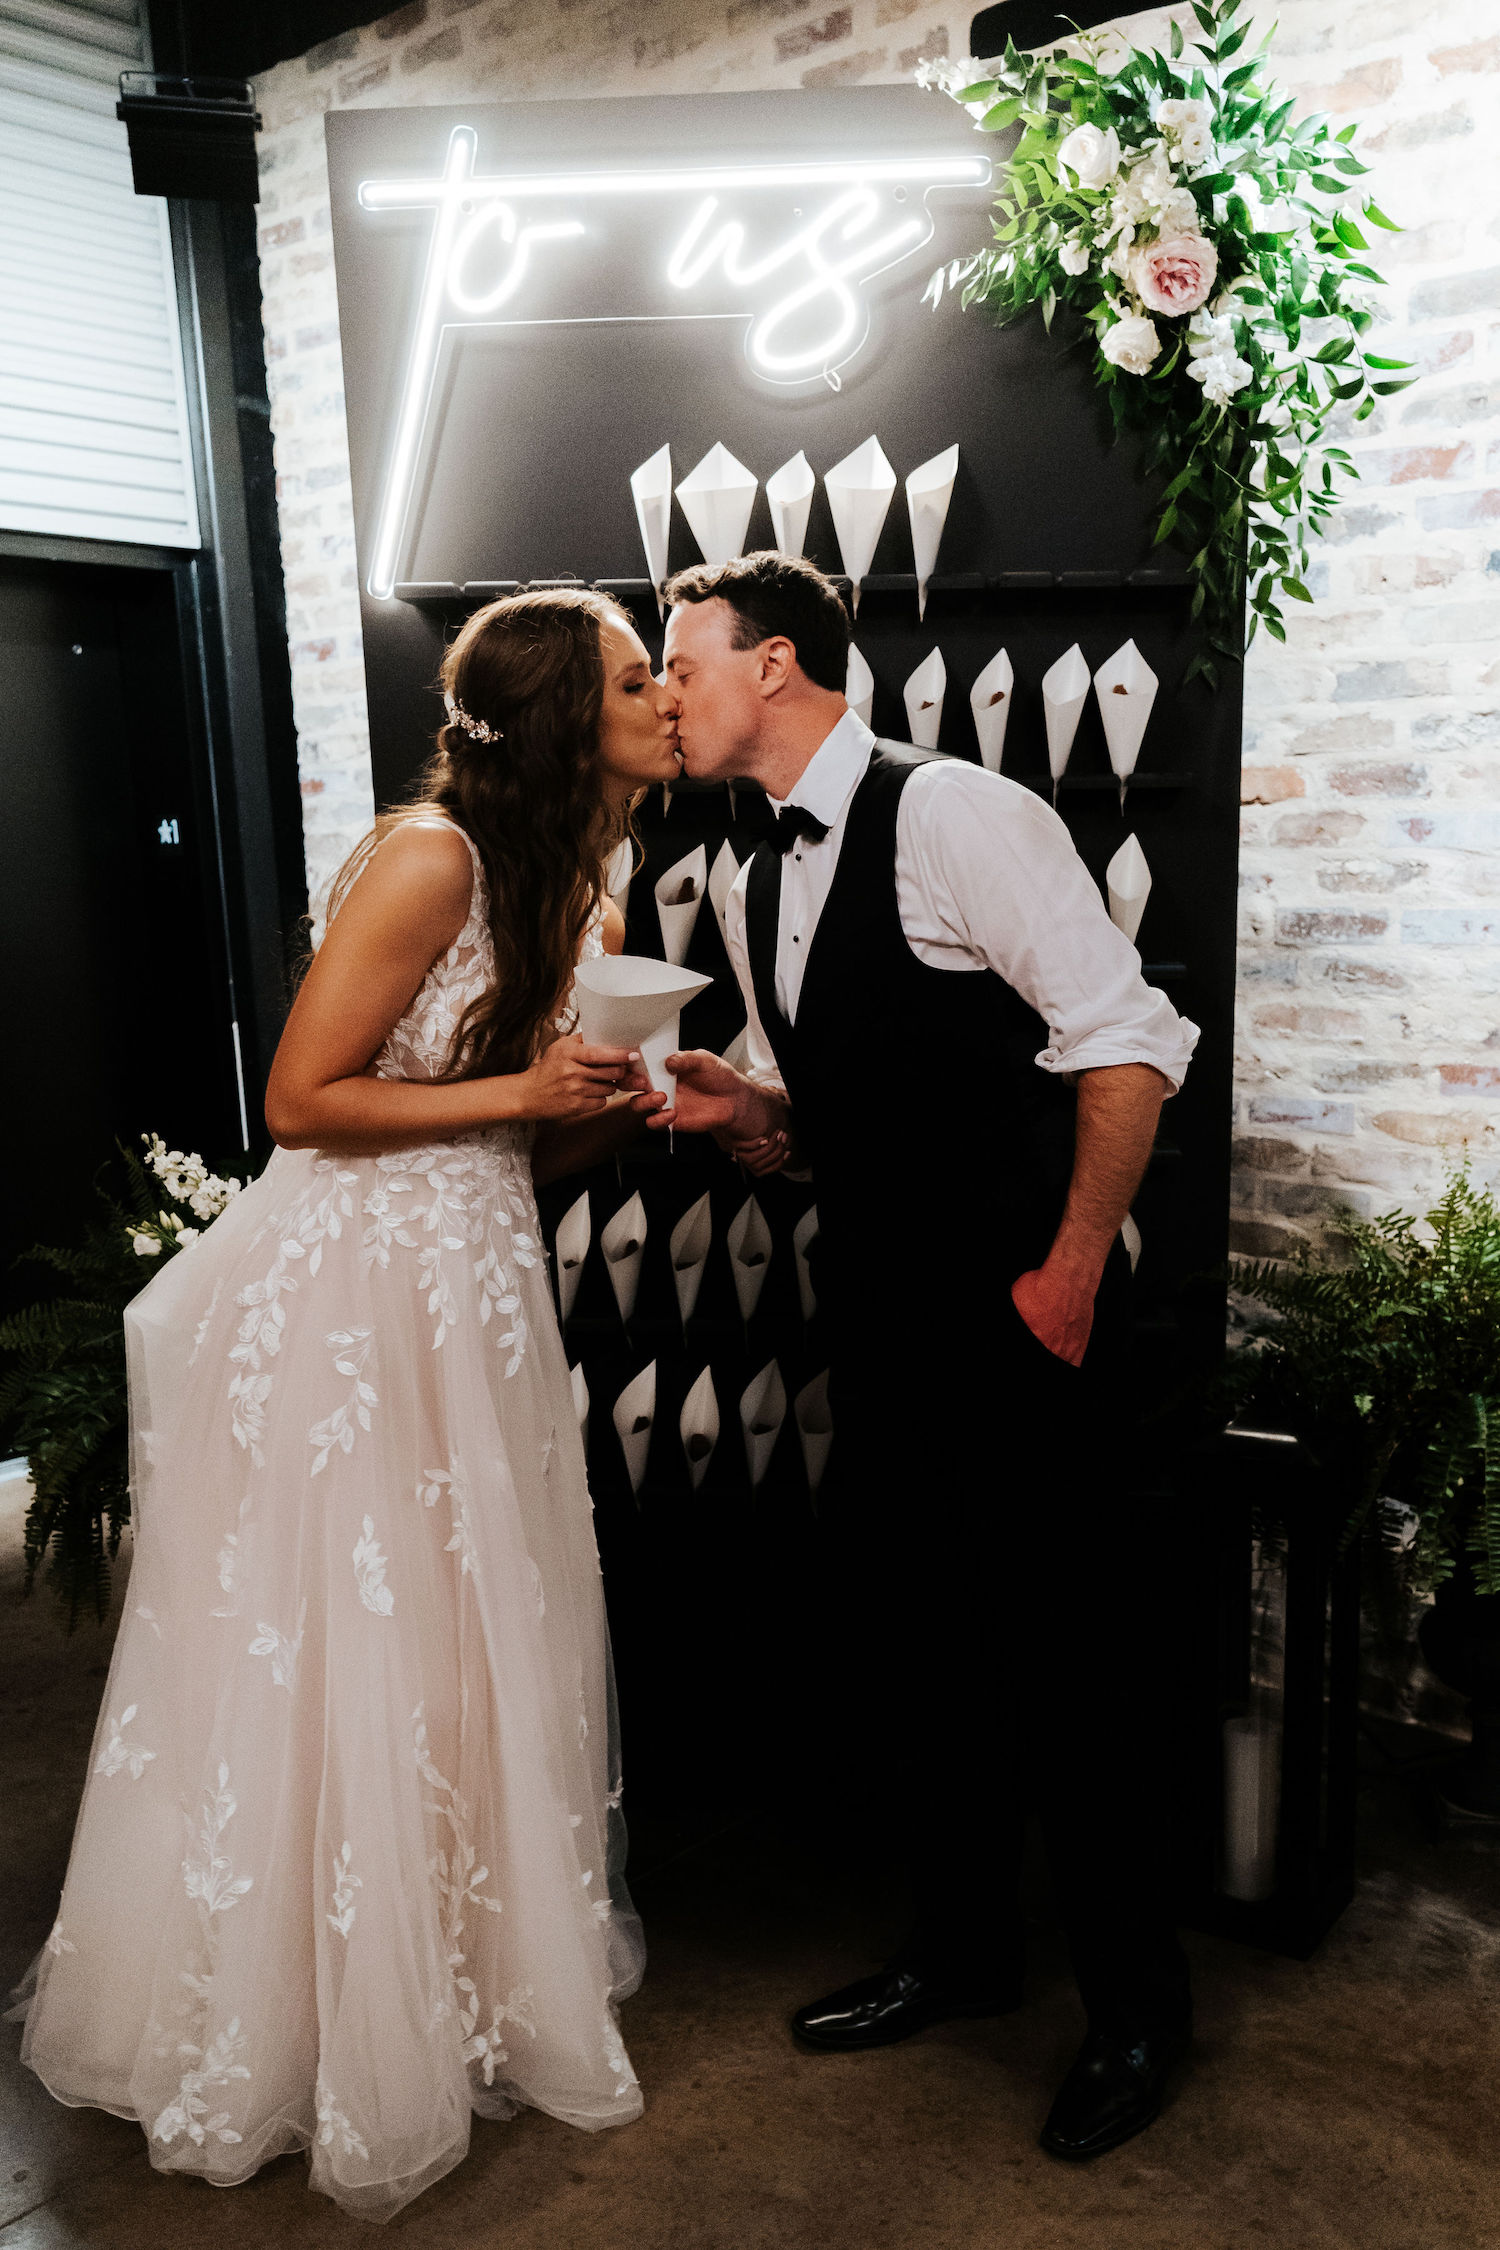 """The newlywed couple exchanges a kiss in front of their custom brownie wall adorned with florals and a neon sign that reads """"to us."""""""